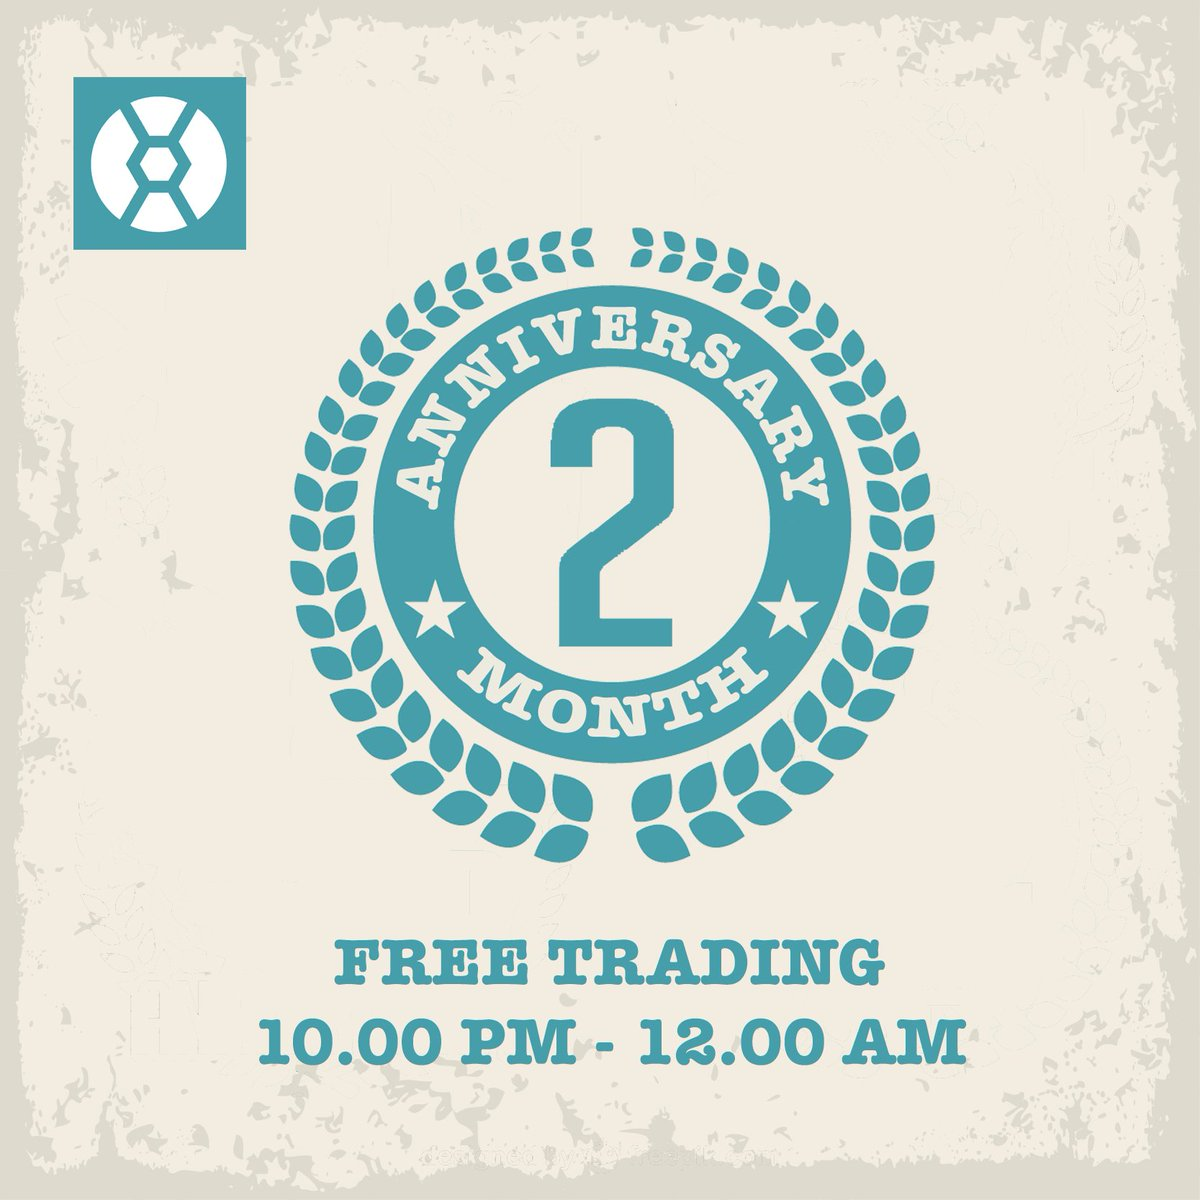 We&#39;re now 2 months old (launched on August 25, 2017)! Let&#39;s #celebrate with free #trades tonight! #bitcoin #ethereum #blockchain #crypto<br>http://pic.twitter.com/LxIrd9W93B